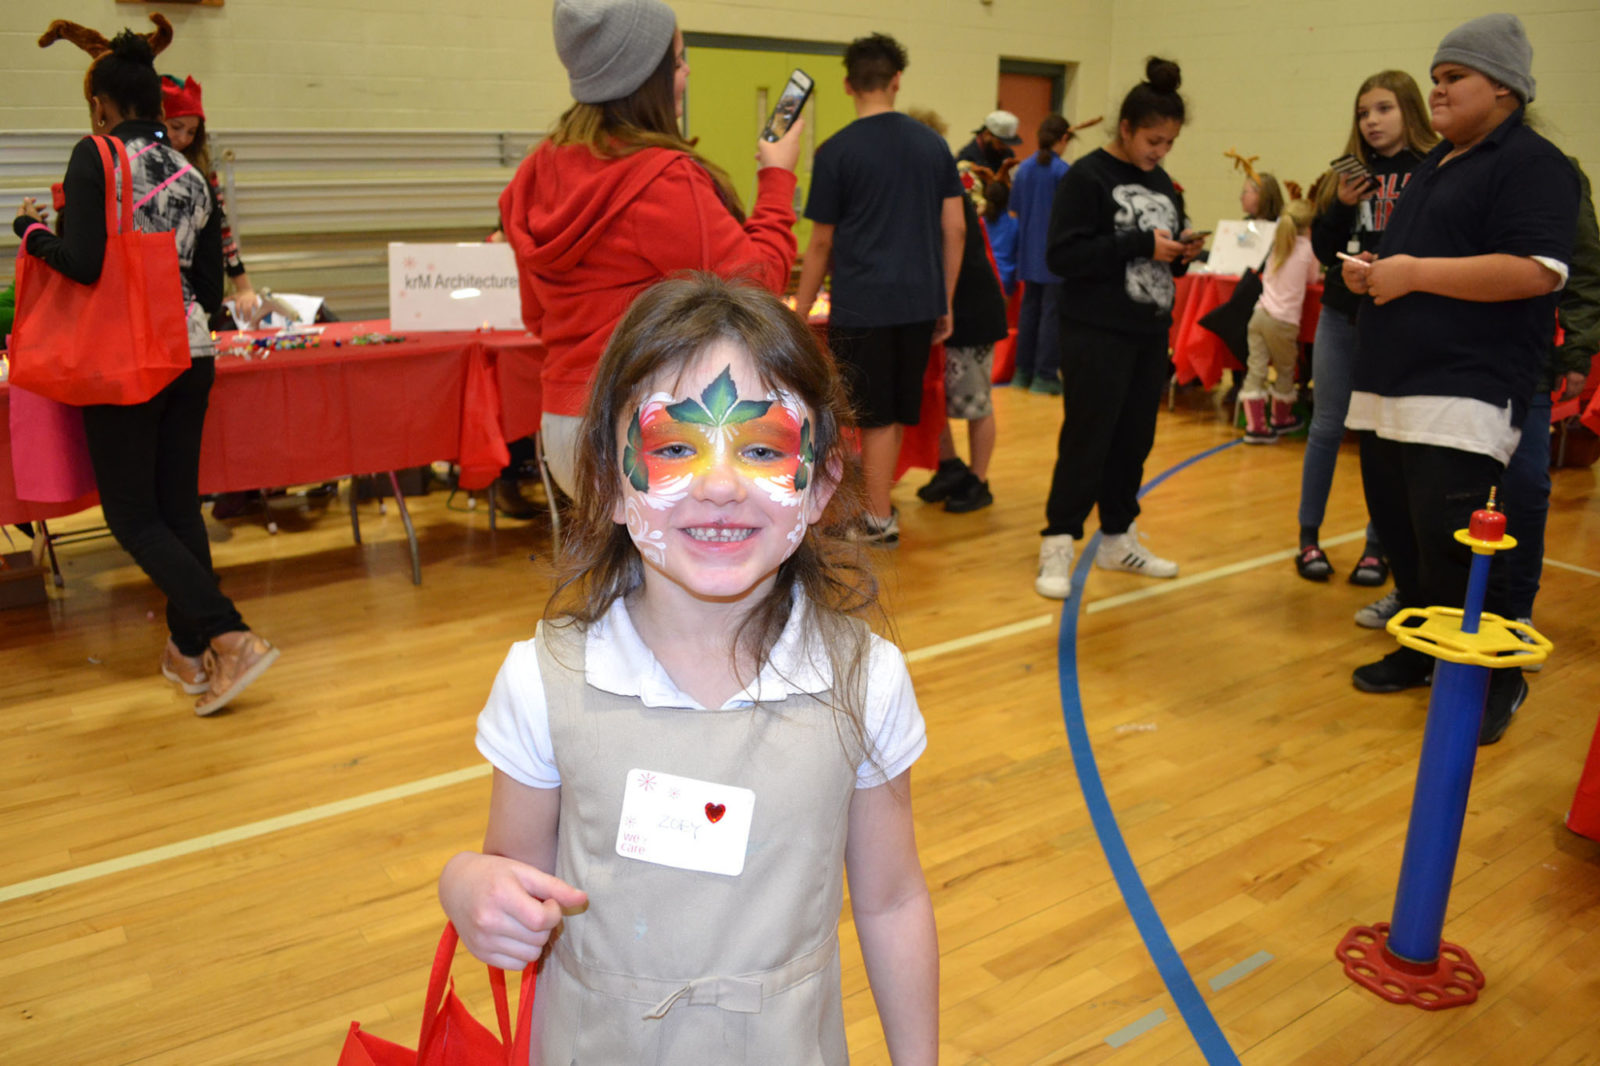 WeCare event 2018: girl shows off her face paint